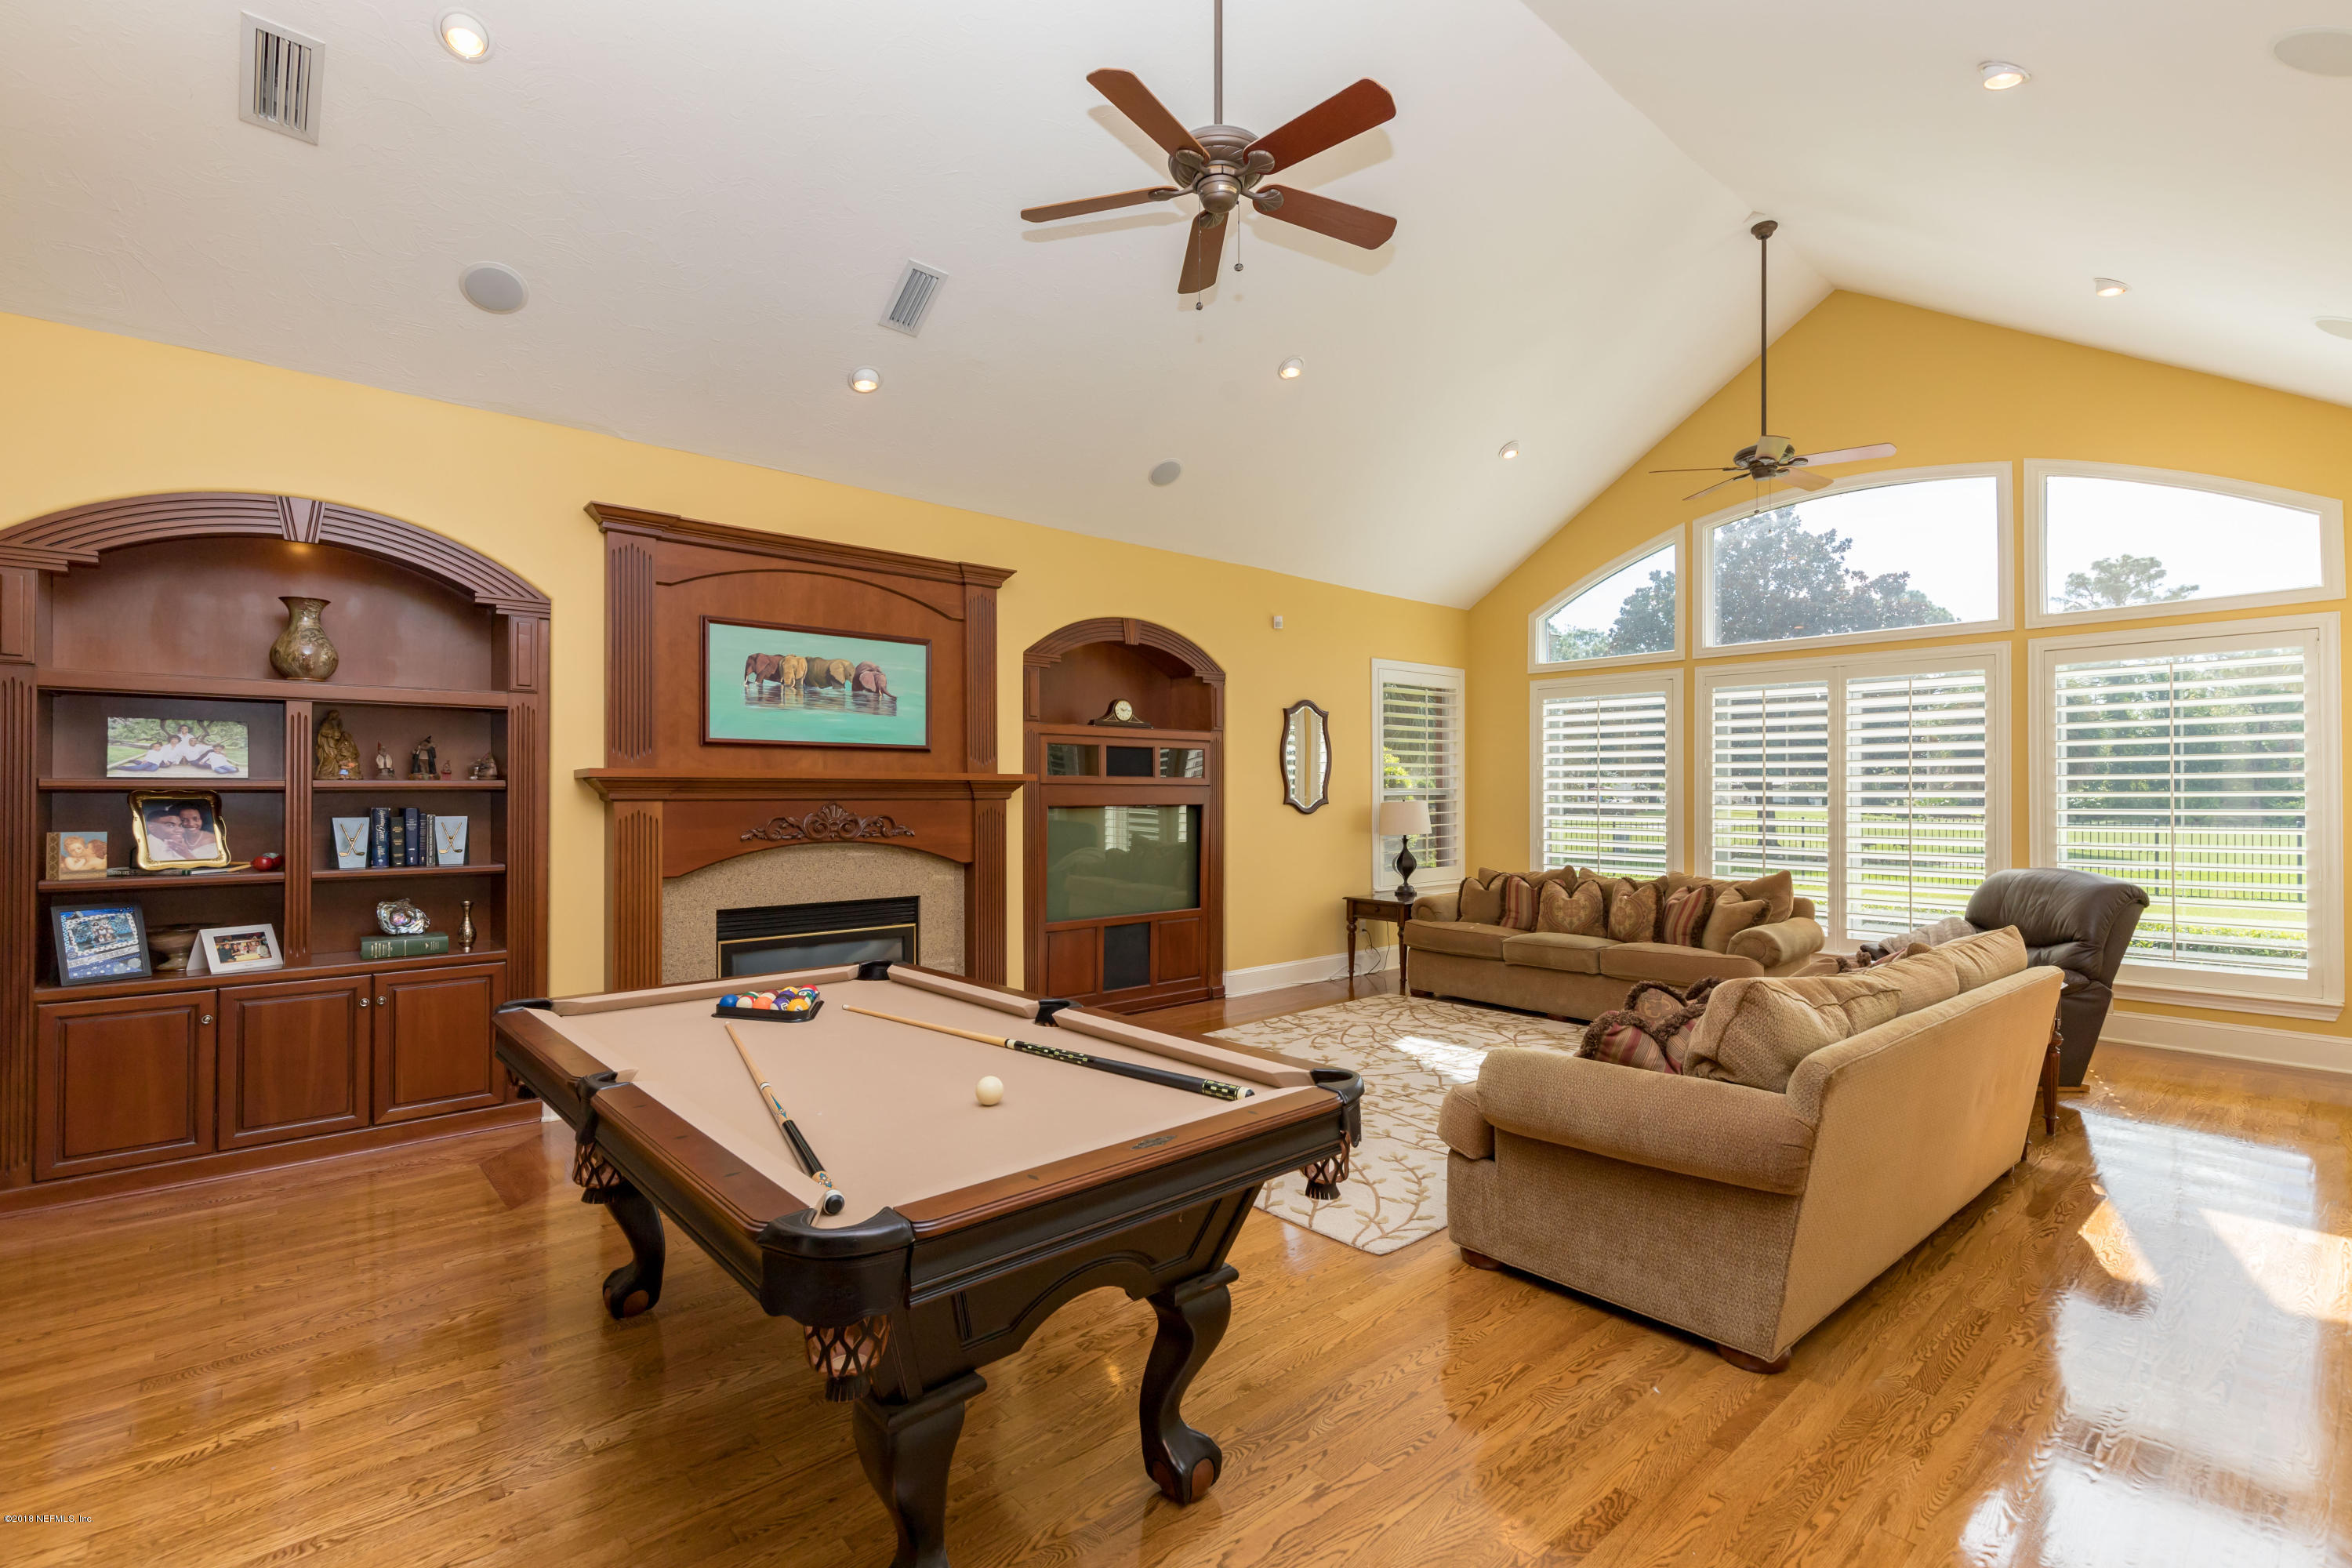 4481 CATHEYS CLUB, JACKSONVILLE, FLORIDA 32224, 5 Bedrooms Bedrooms, ,4 BathroomsBathrooms,Residential - single family,For sale,CATHEYS CLUB,956396